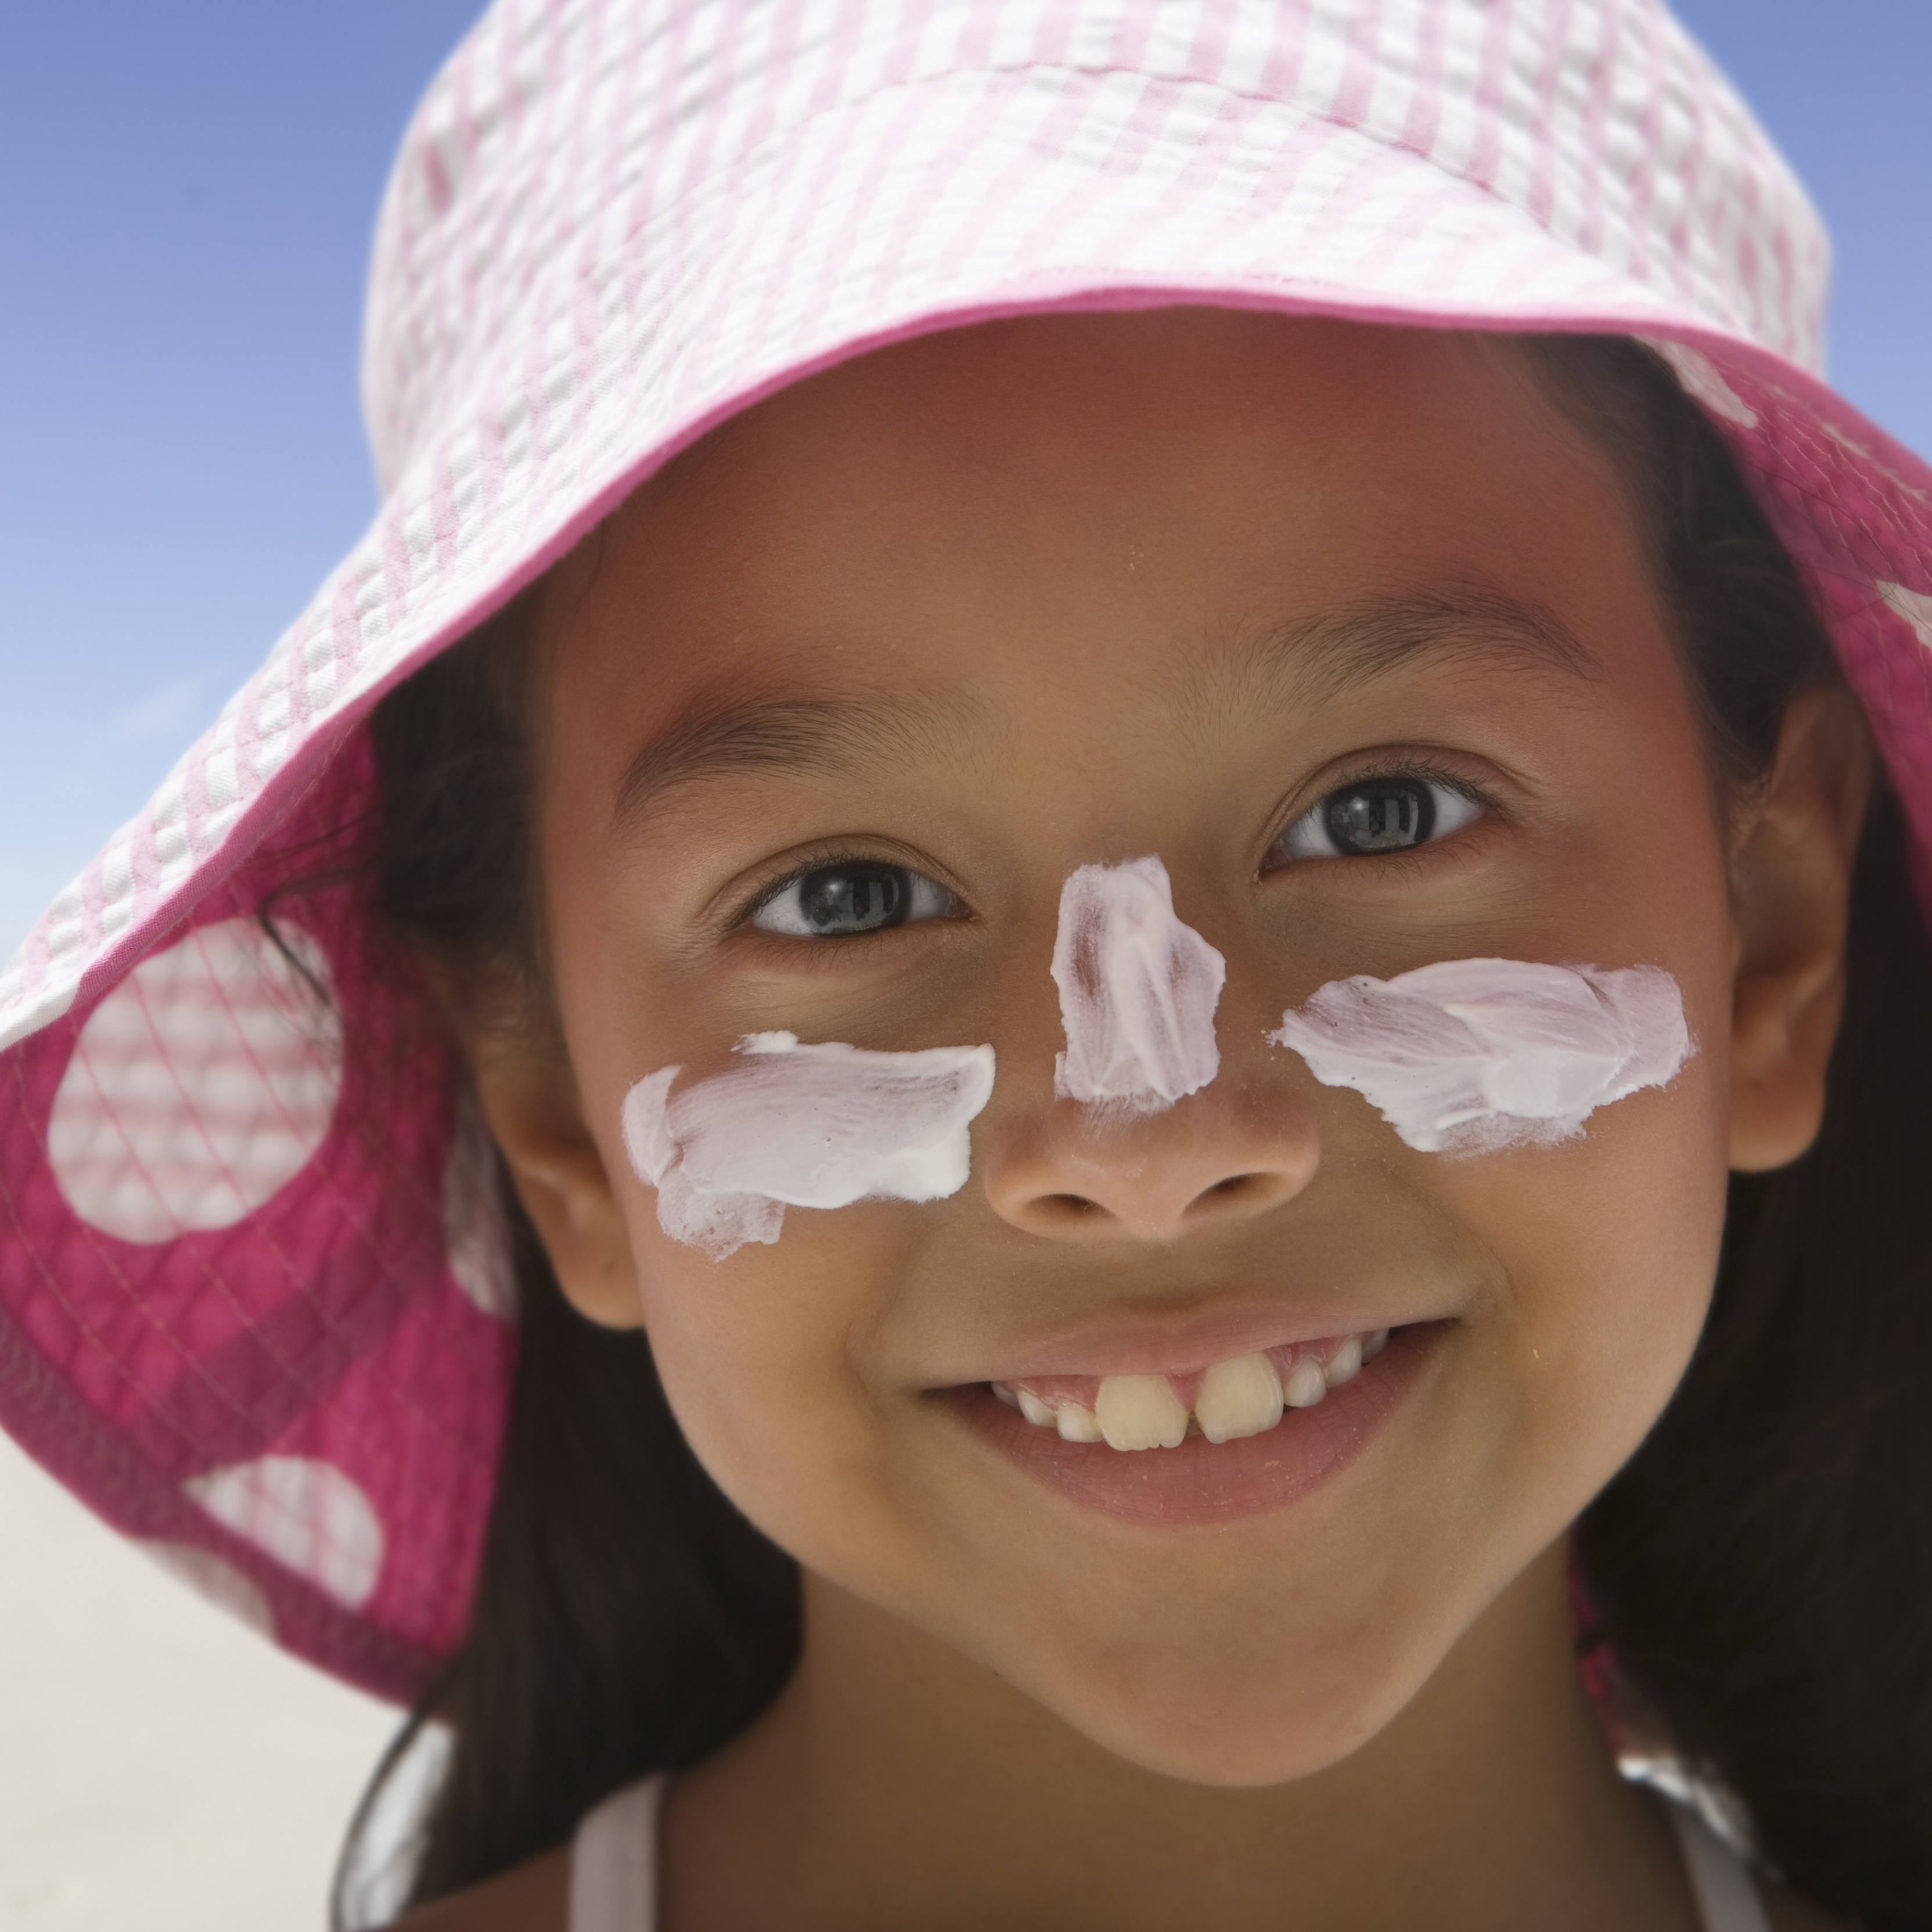 a little girl, perhaps Latina, at the beach smiling and wearing a sun hat, sunscreen